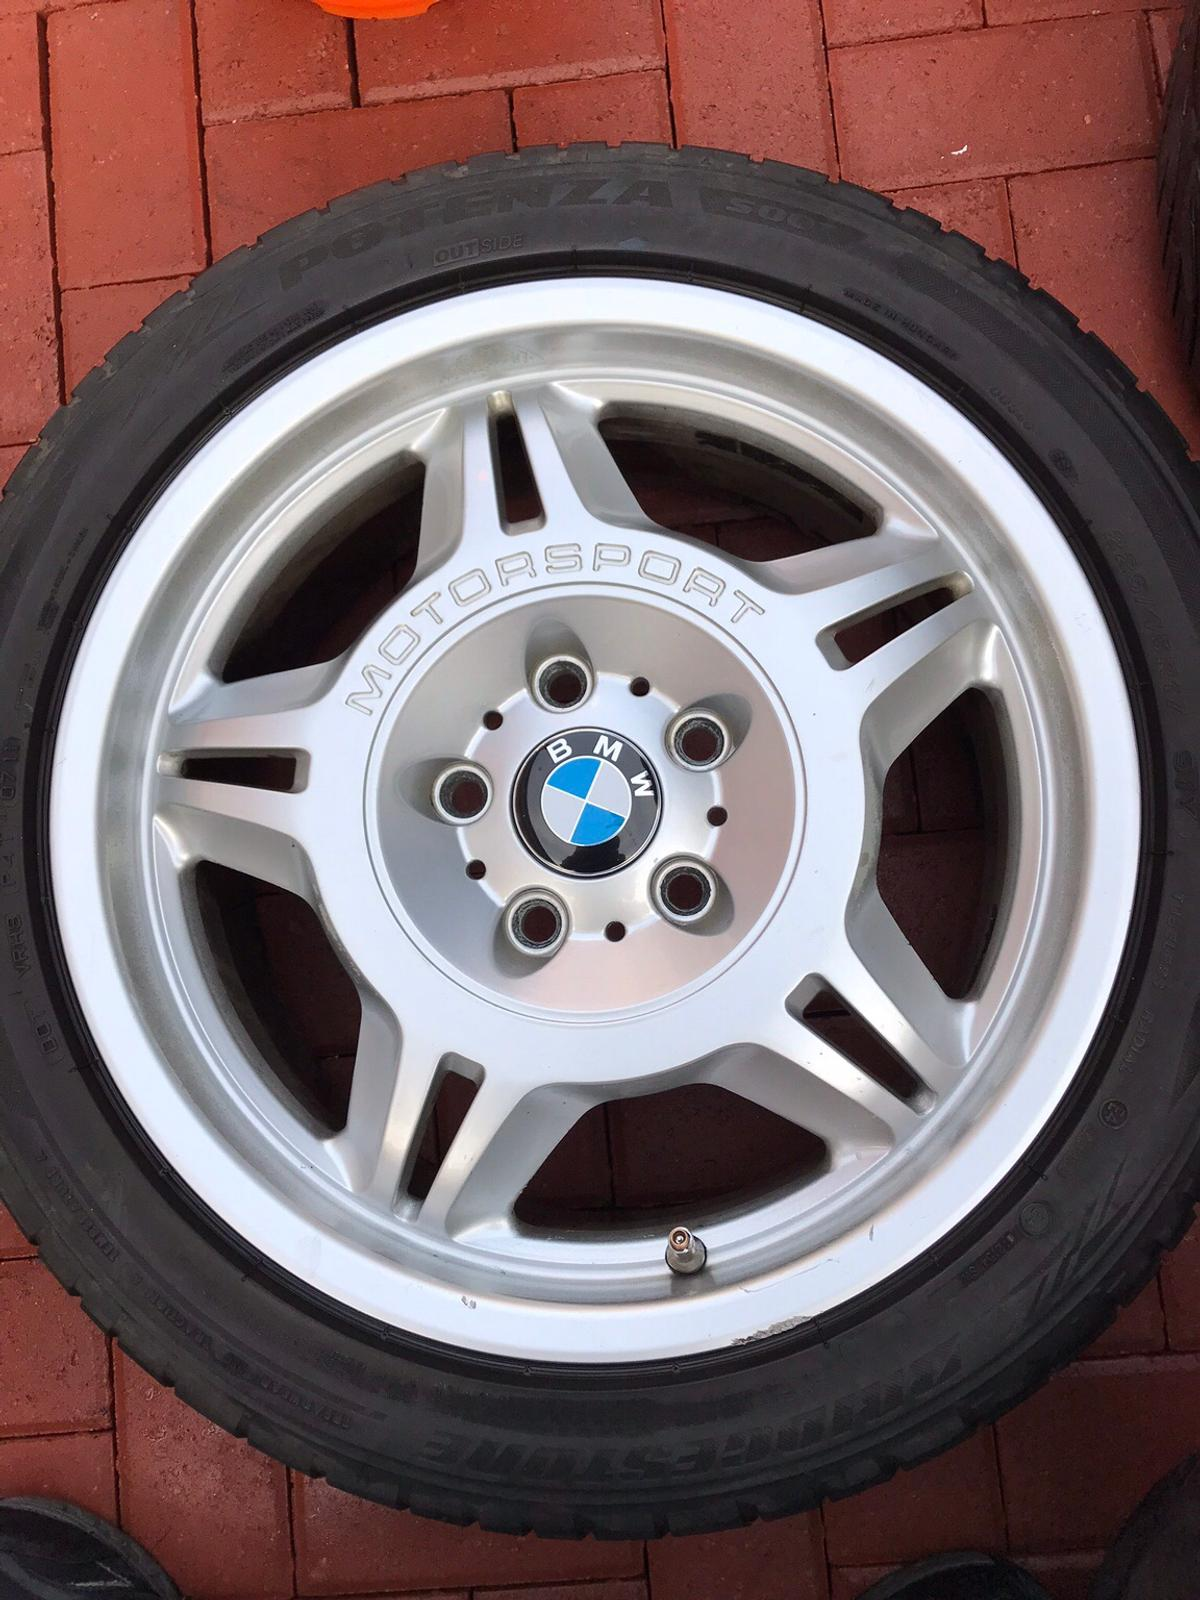 Bmw E36 M3 Evo Alloy Wheels Fit E46 Z3 5x120 In Ol9 Chadderton For 210 00 For Sale Shpock